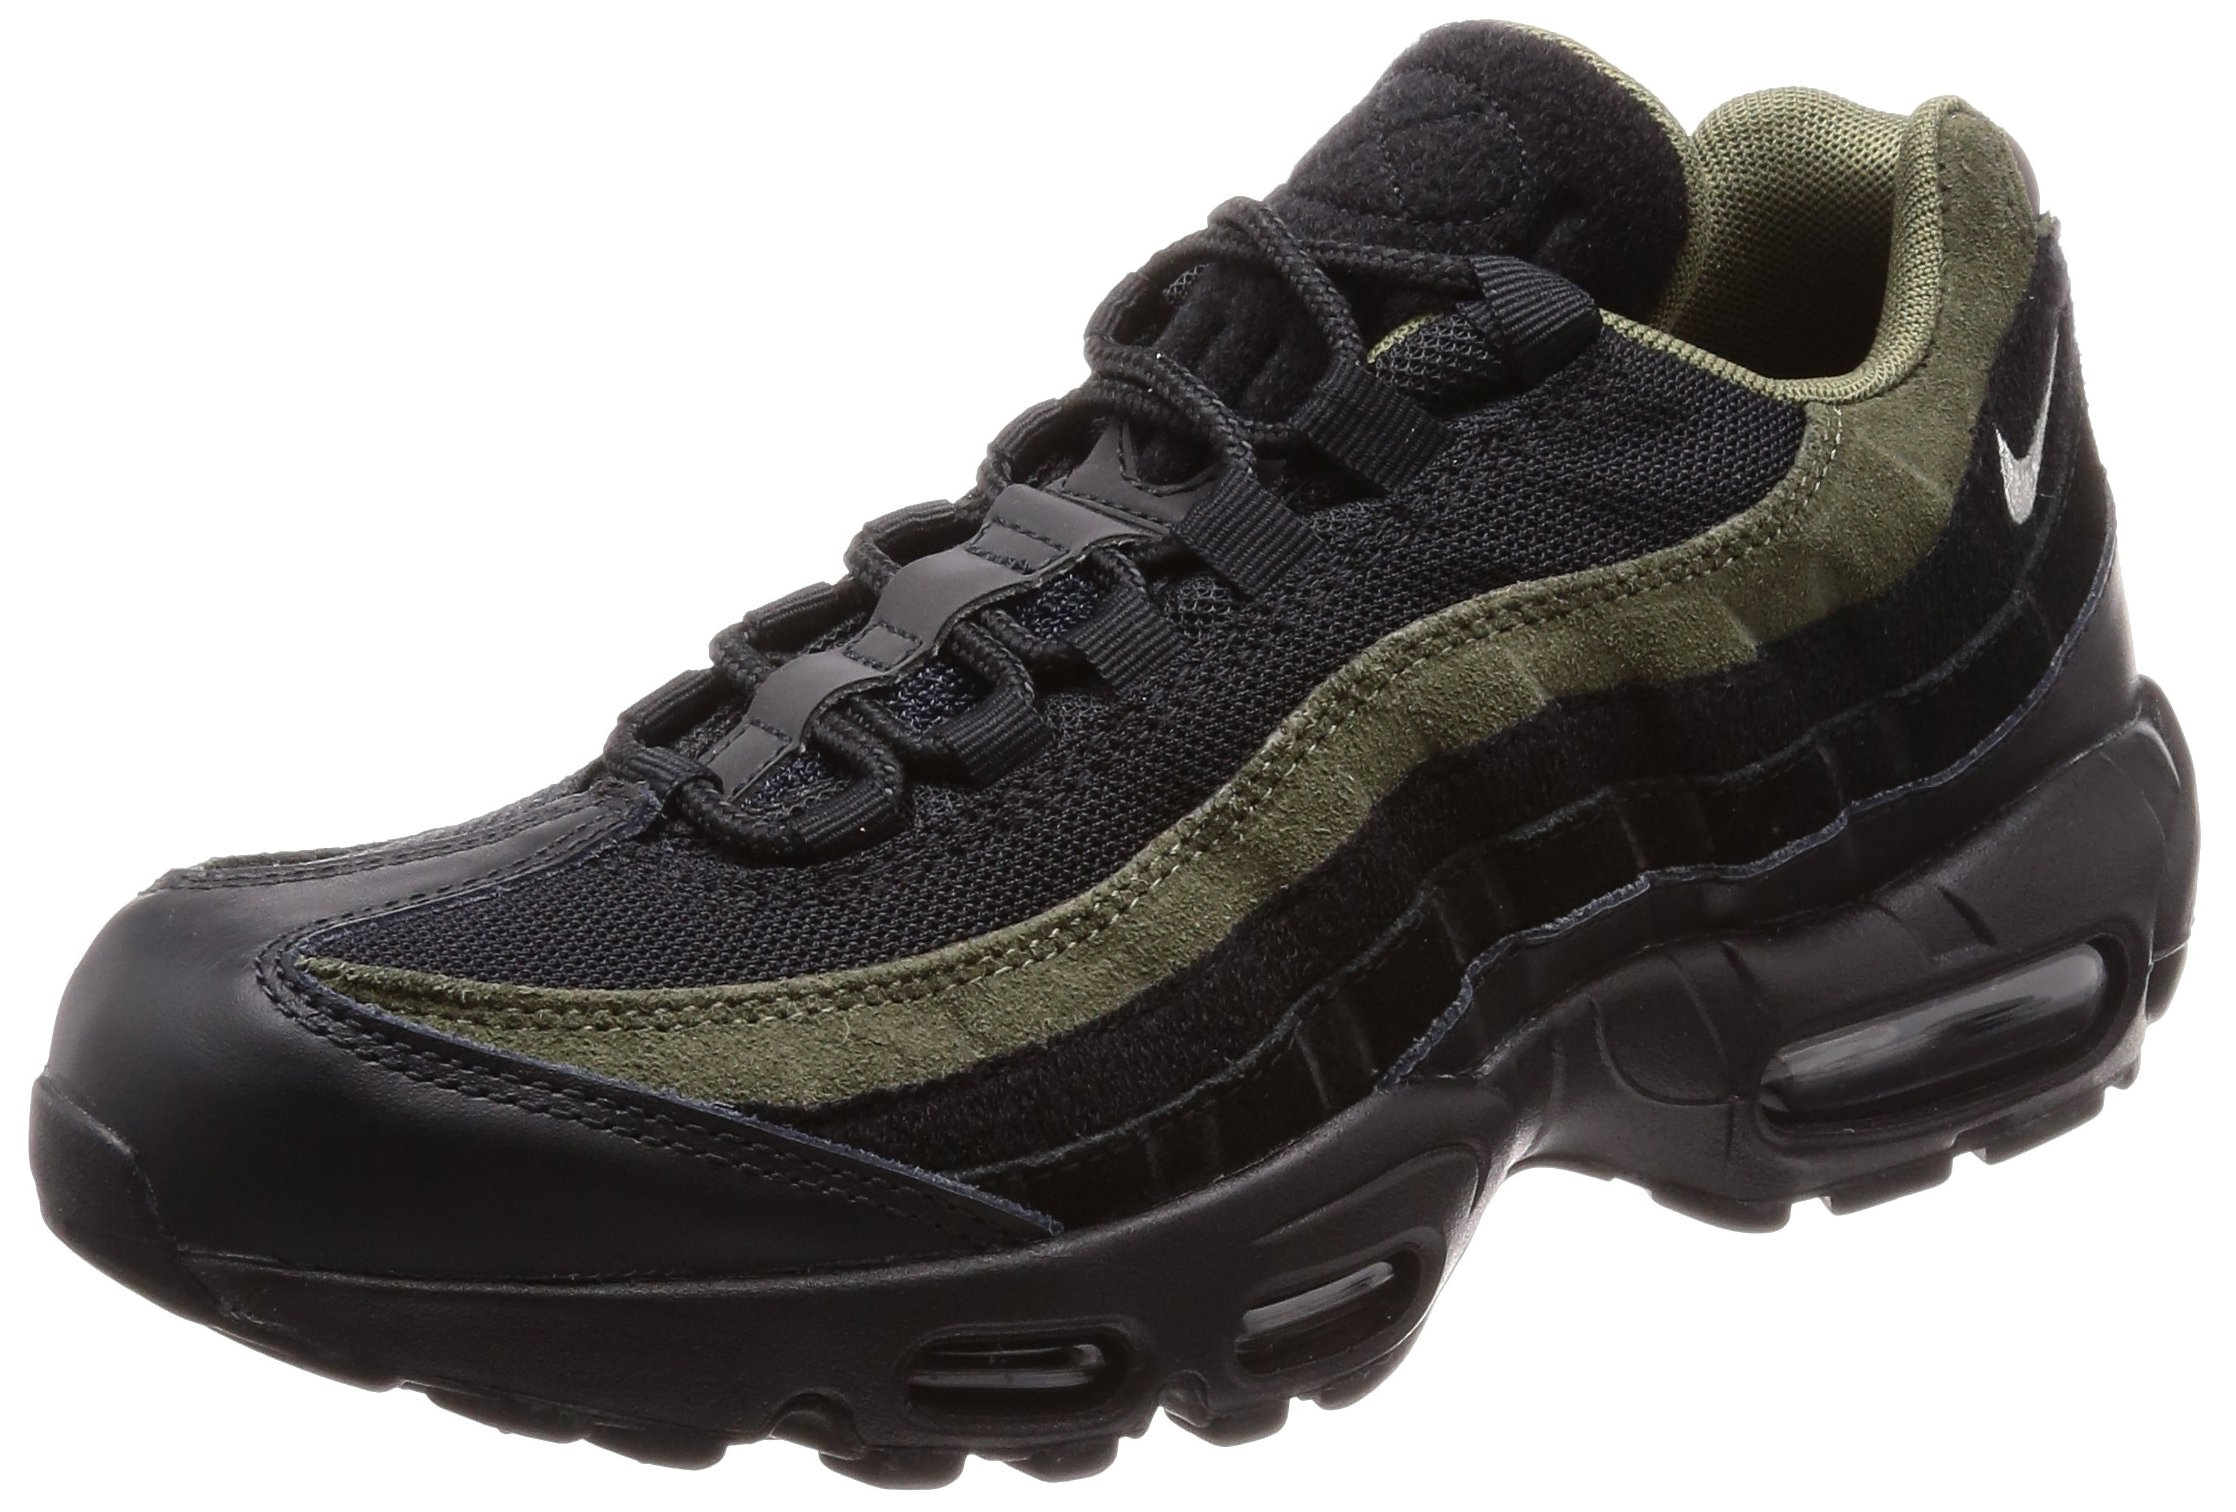 competitive price 81413 bb2d1 Galleon - NIKE Men s AIR MAX 95 HAL Shoe Black Cargo Khaki FLT Silver (12  D(M) US)